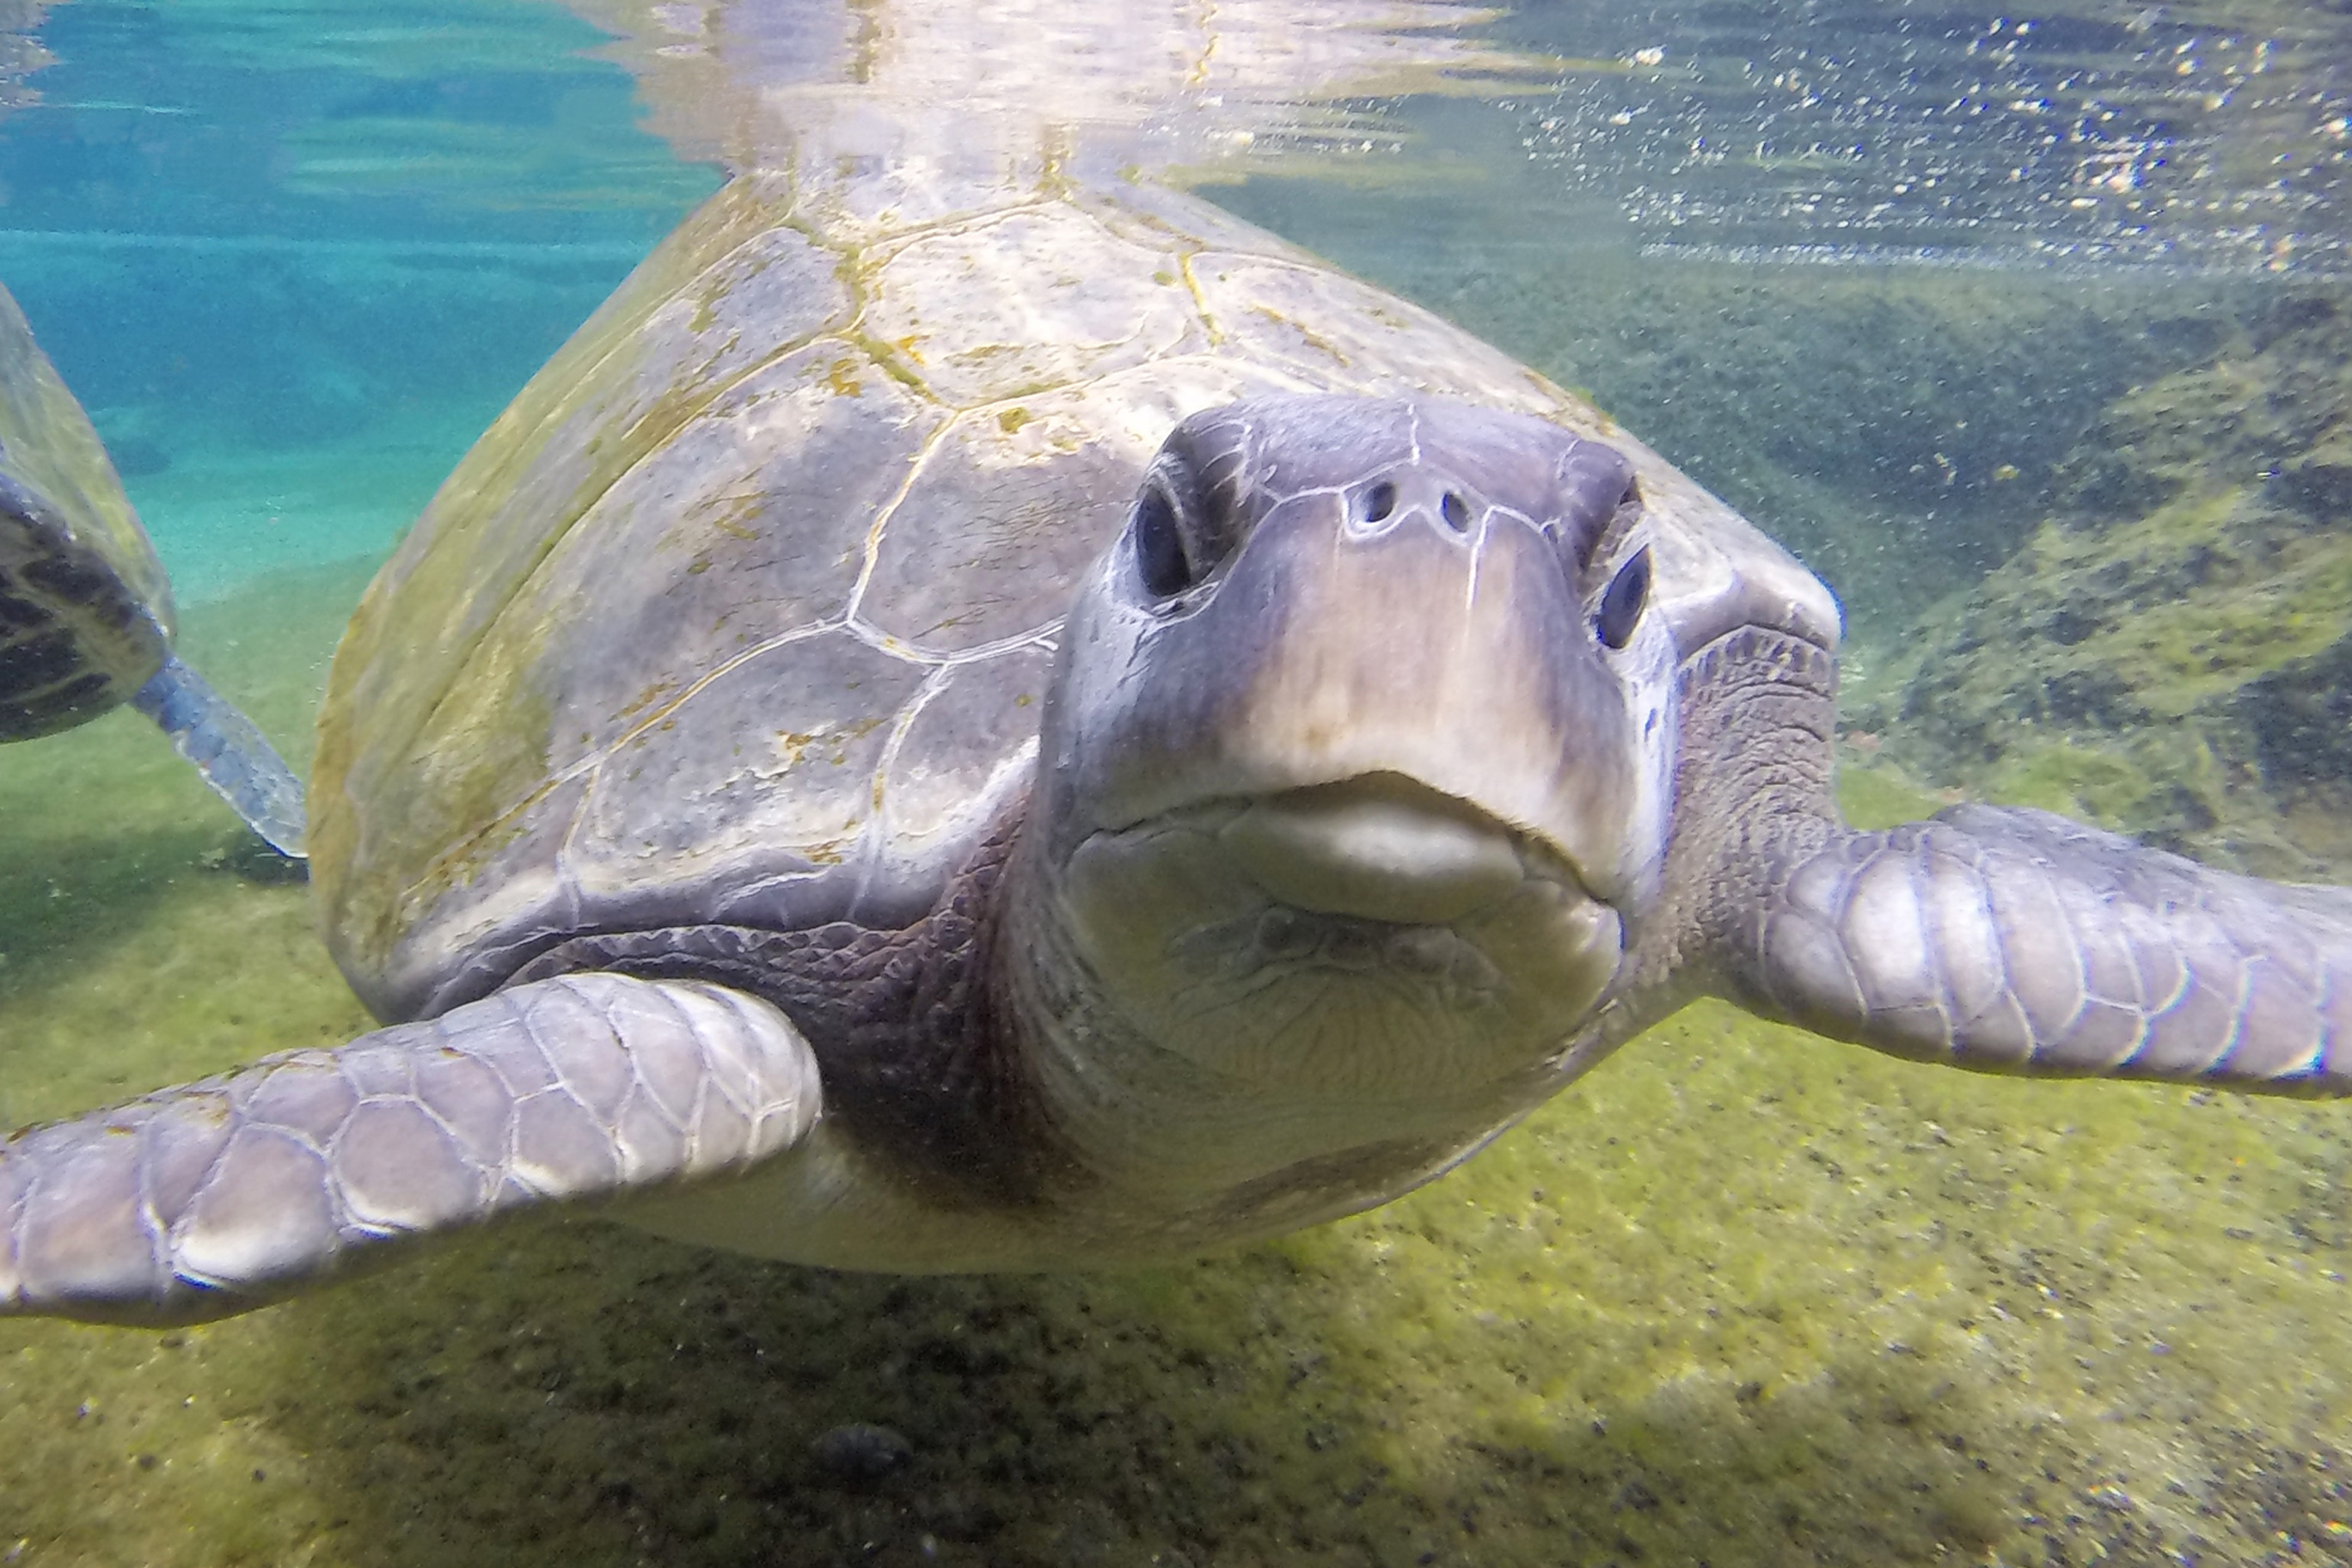 Turt the green sea turtle